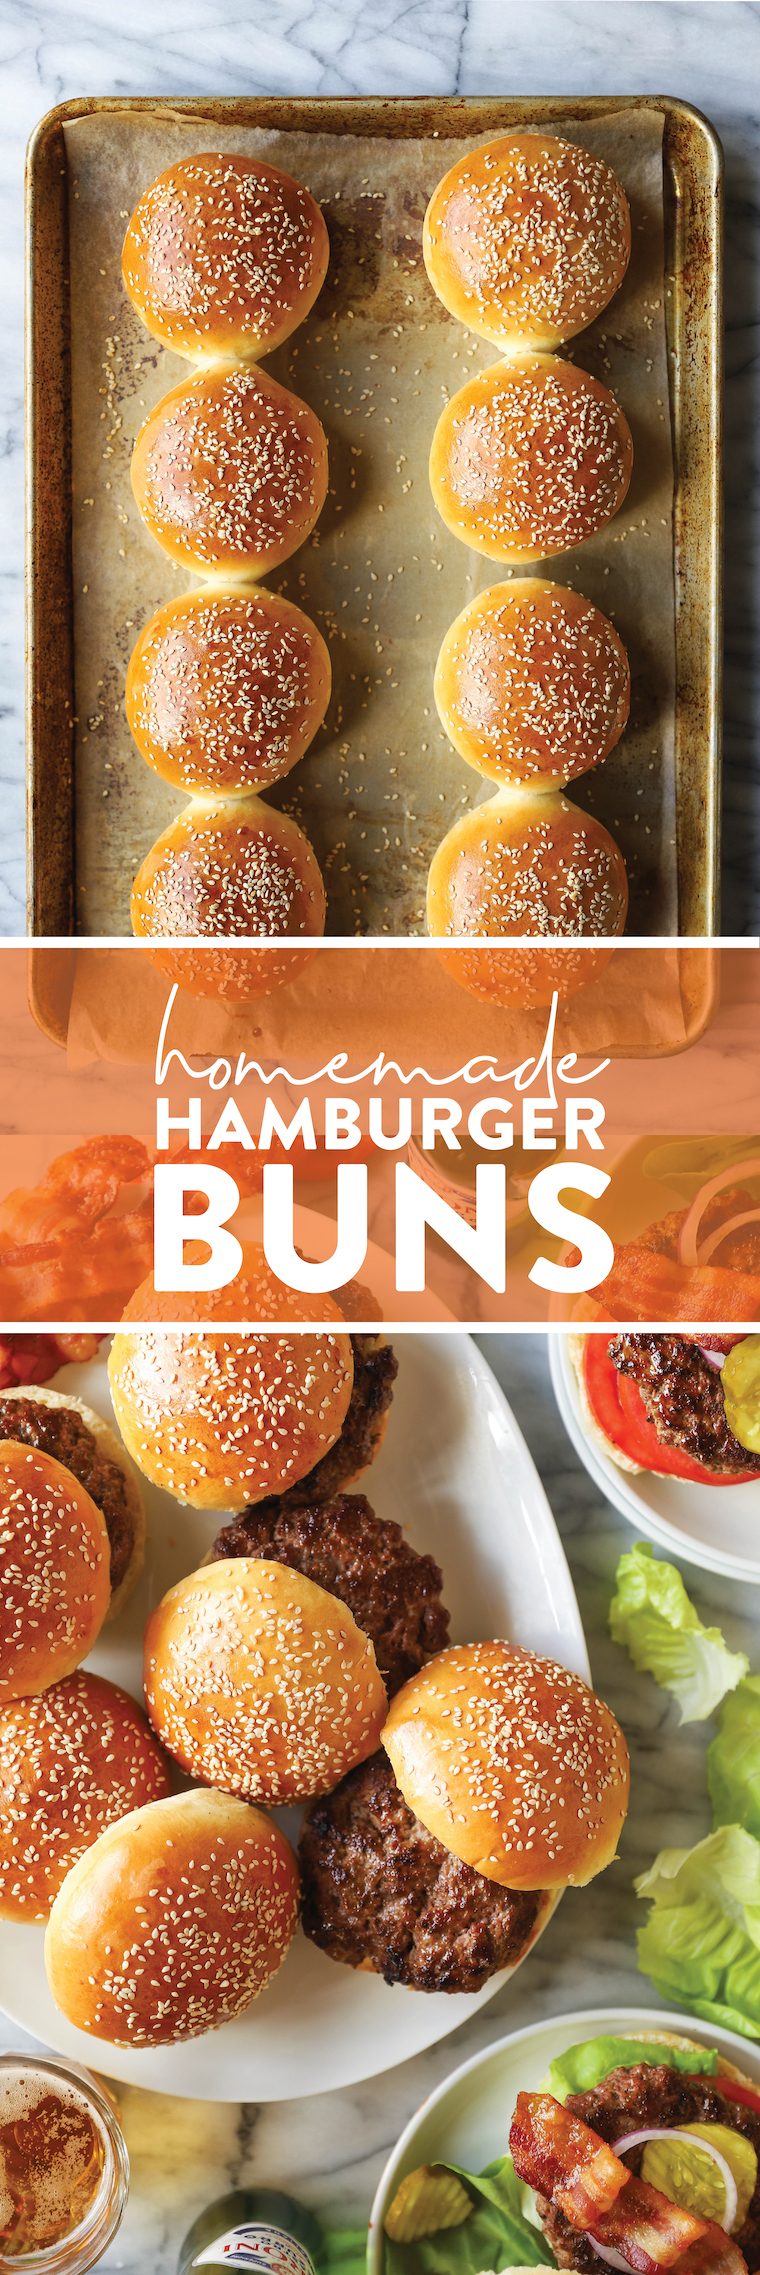 Homemade Hamburger Buns - THE BEST buns ever! So soft, pillowy and airy, perfect for any sandwich. You'll never want store-bought ever again!